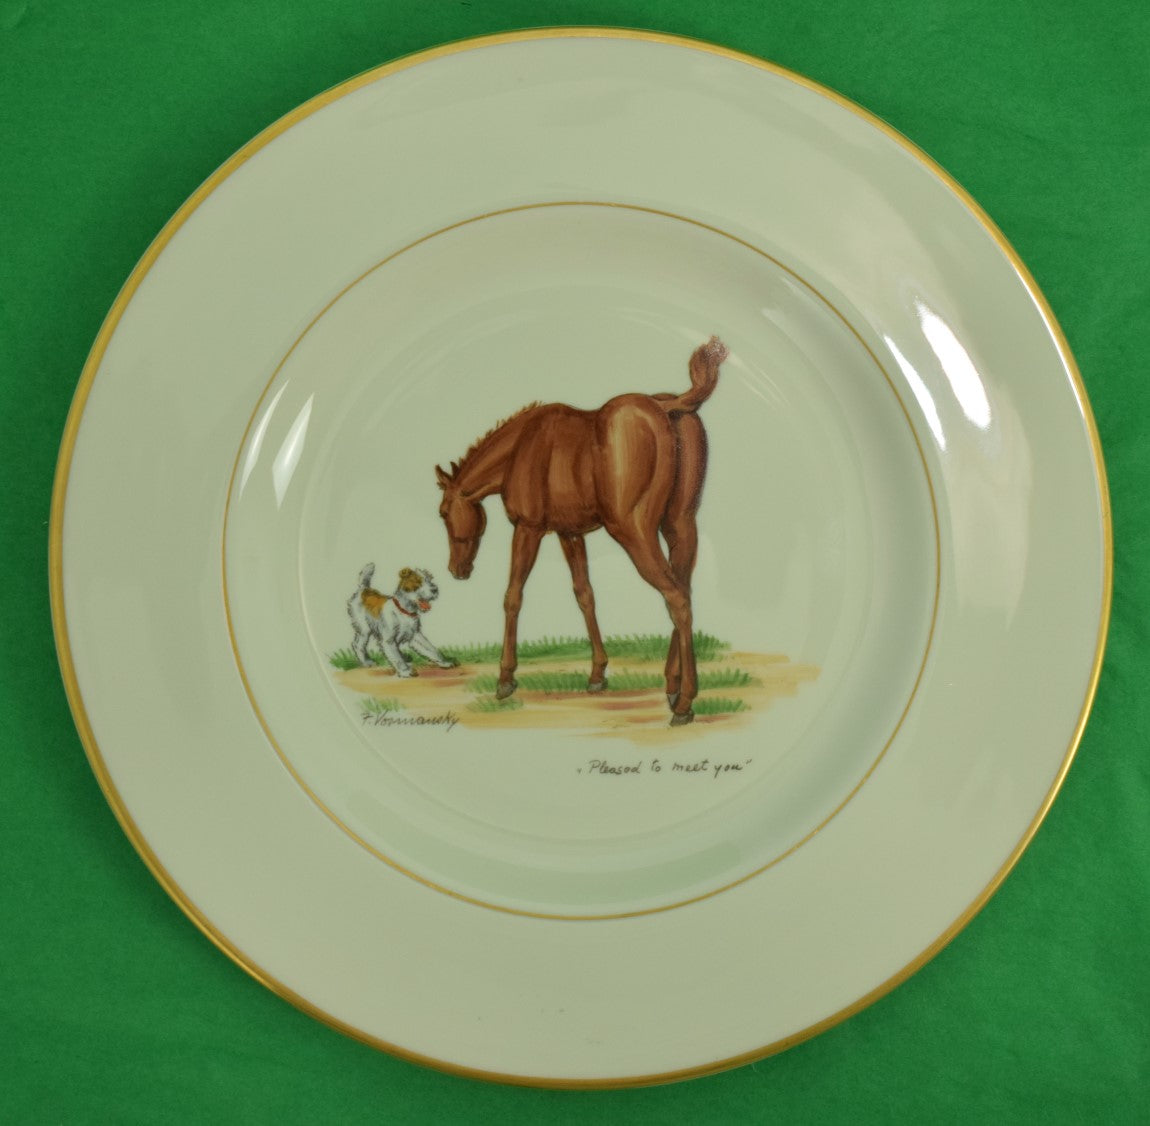 Abercrombie & Fitch 'Pleased to Meet You?' Dinner Plate by Frank Vosmansky